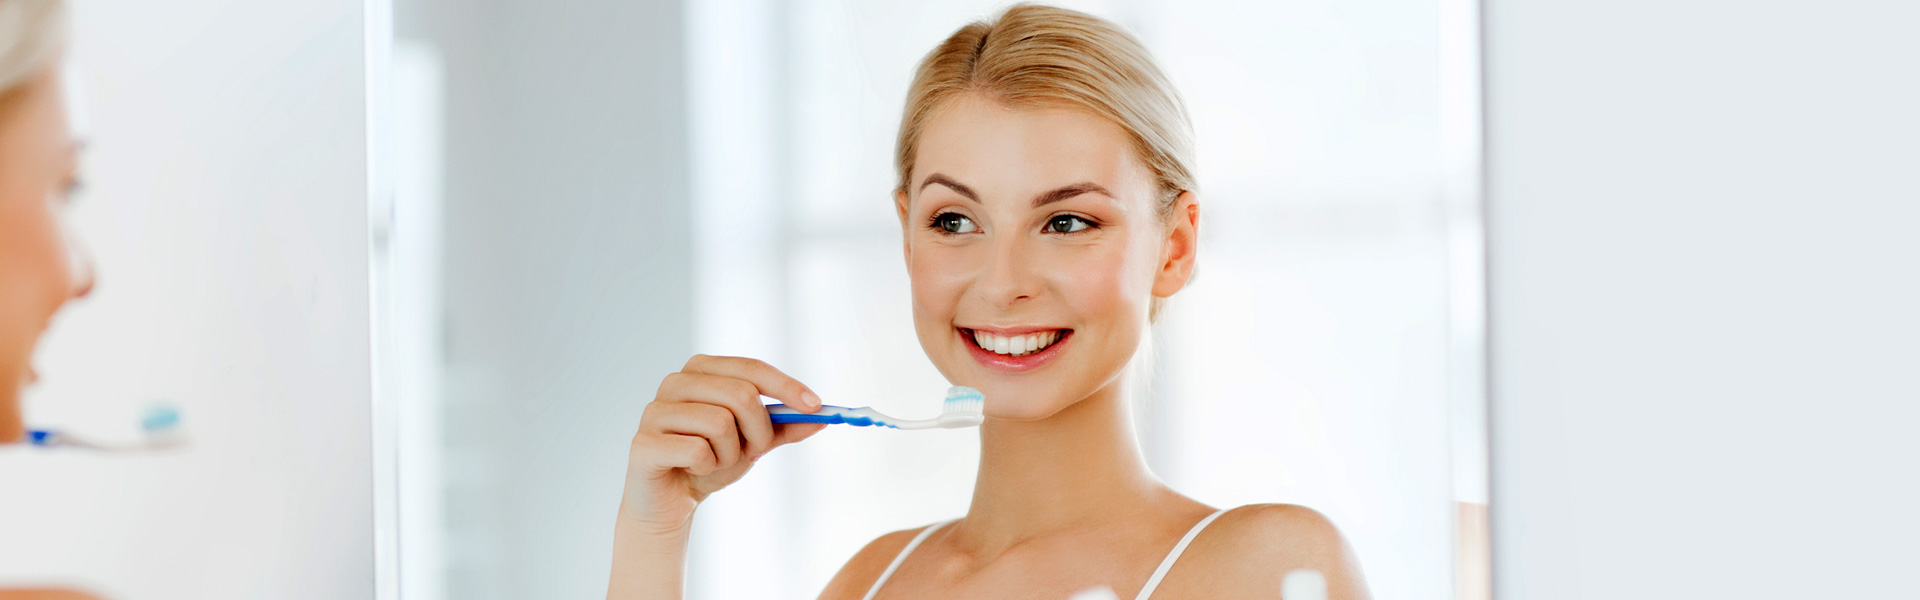 How To Take Care of Your Teeth Everyday